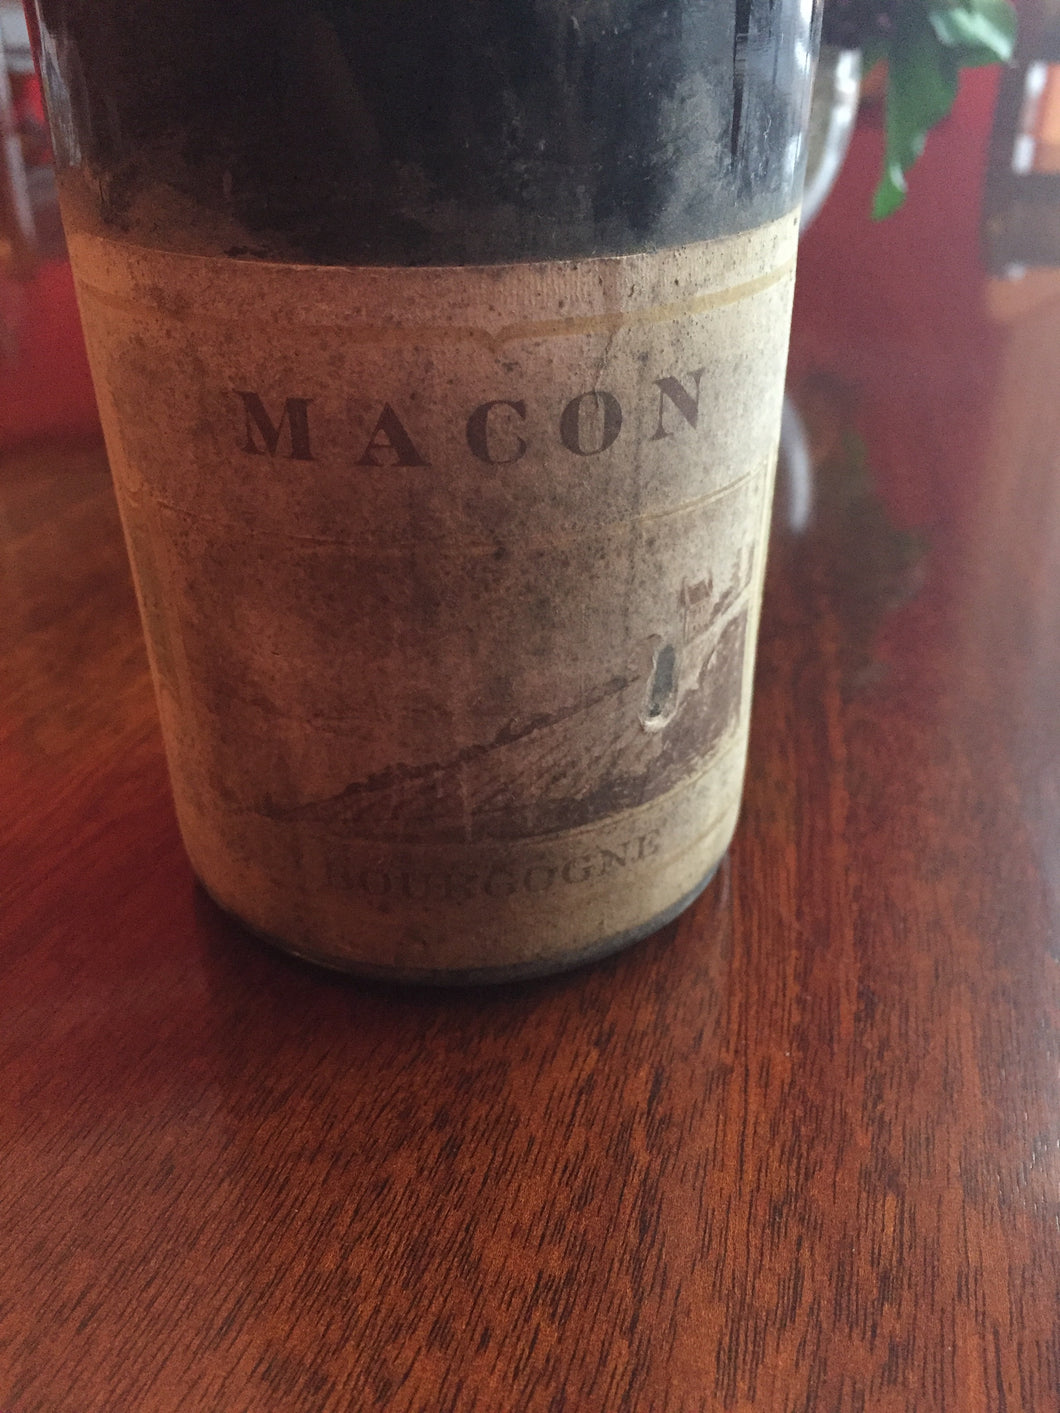 1929 Macon Rouge - Benson Fine Wines